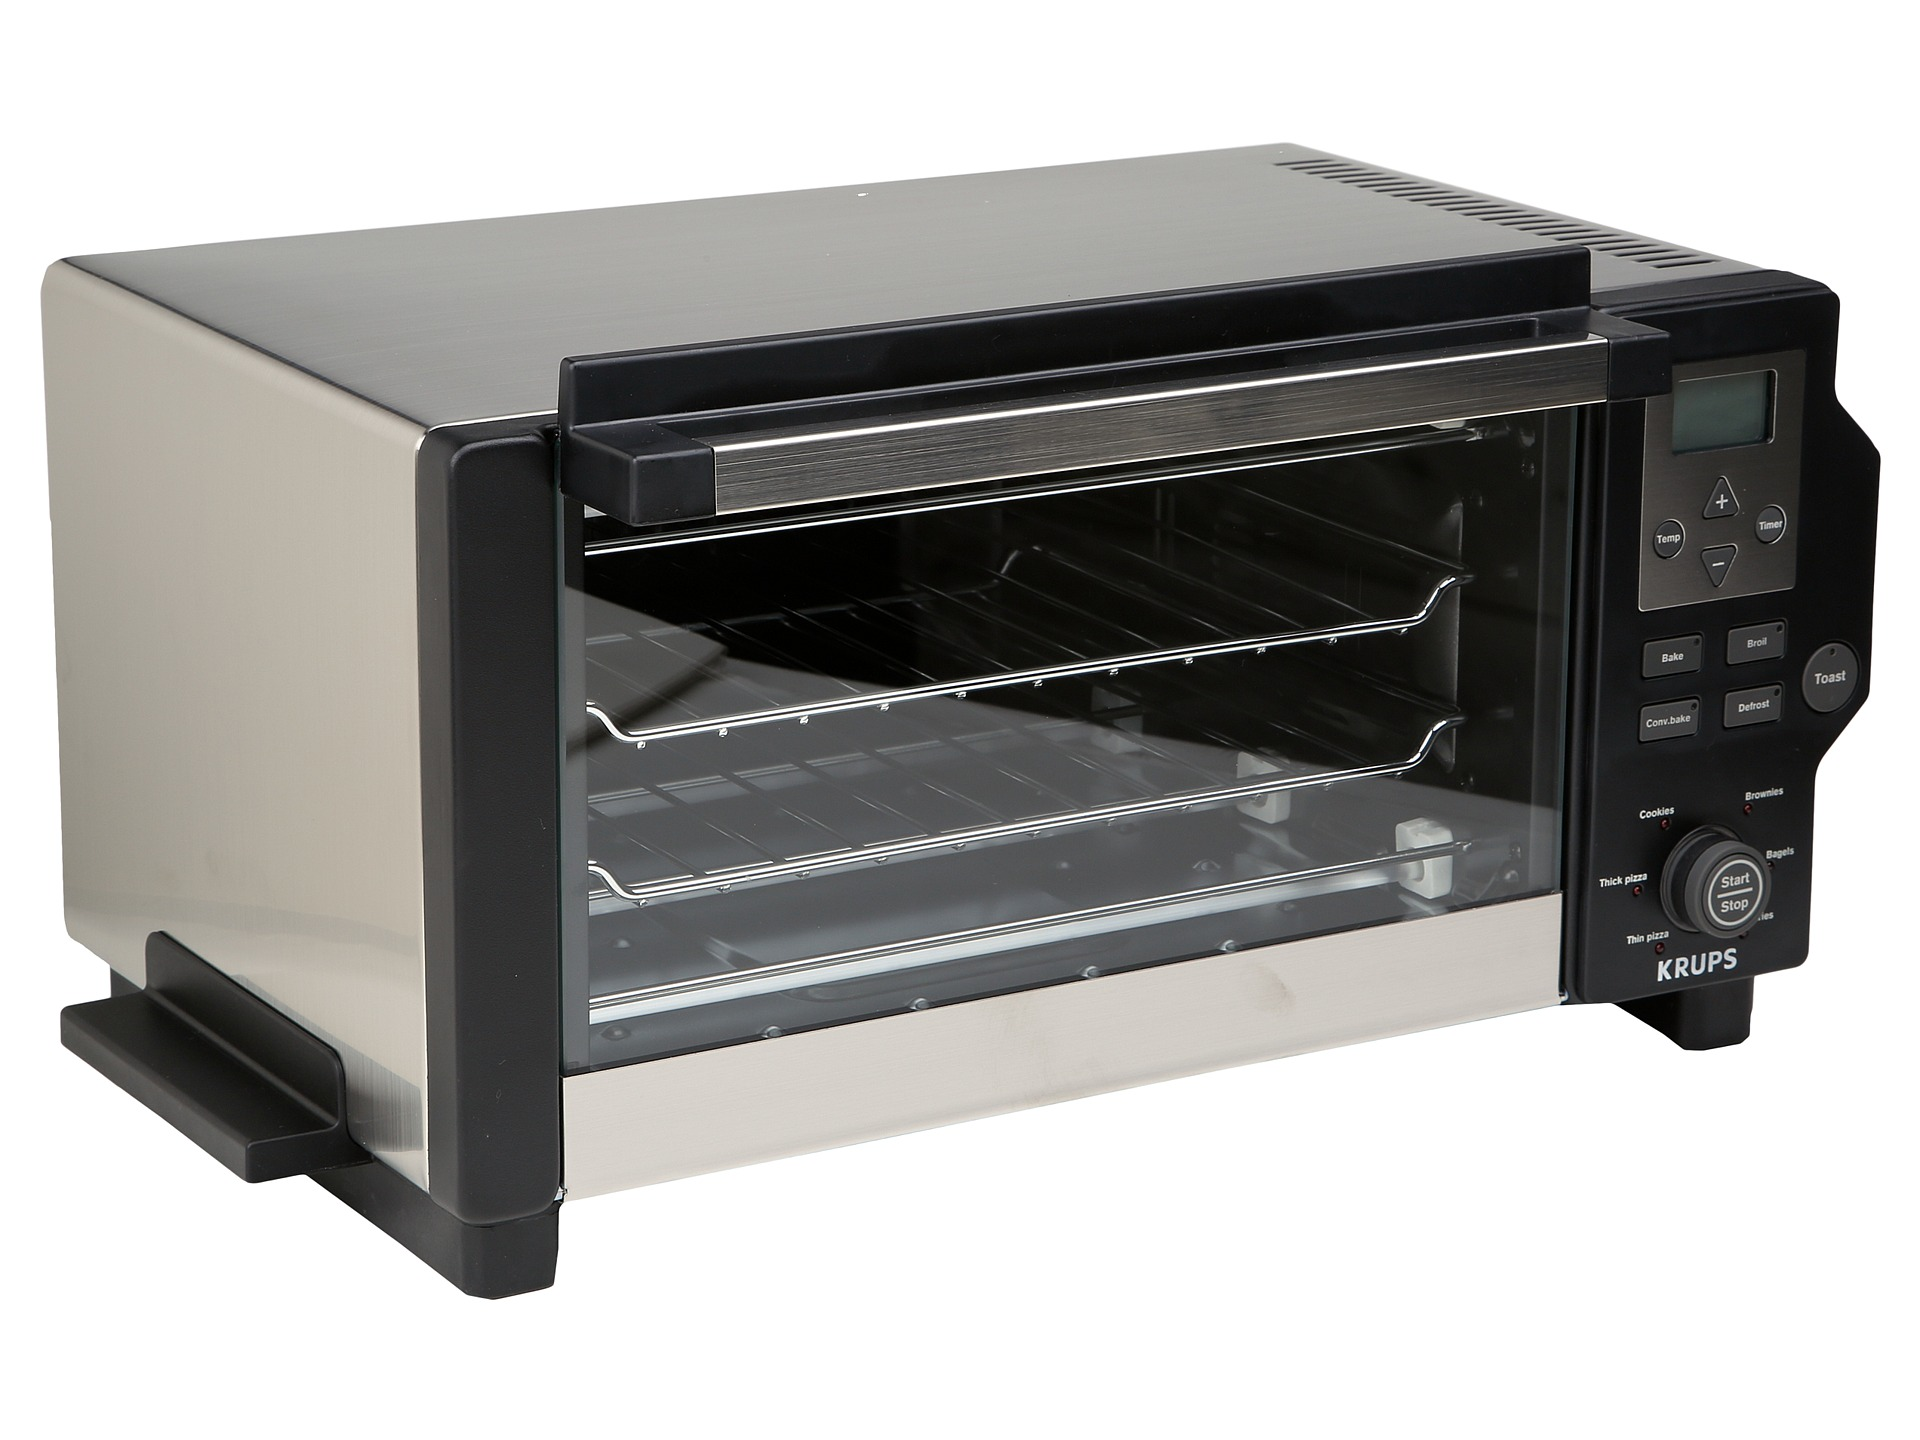 Krups Toaster Oven Black Stainless Steel | Shipped Free at ...